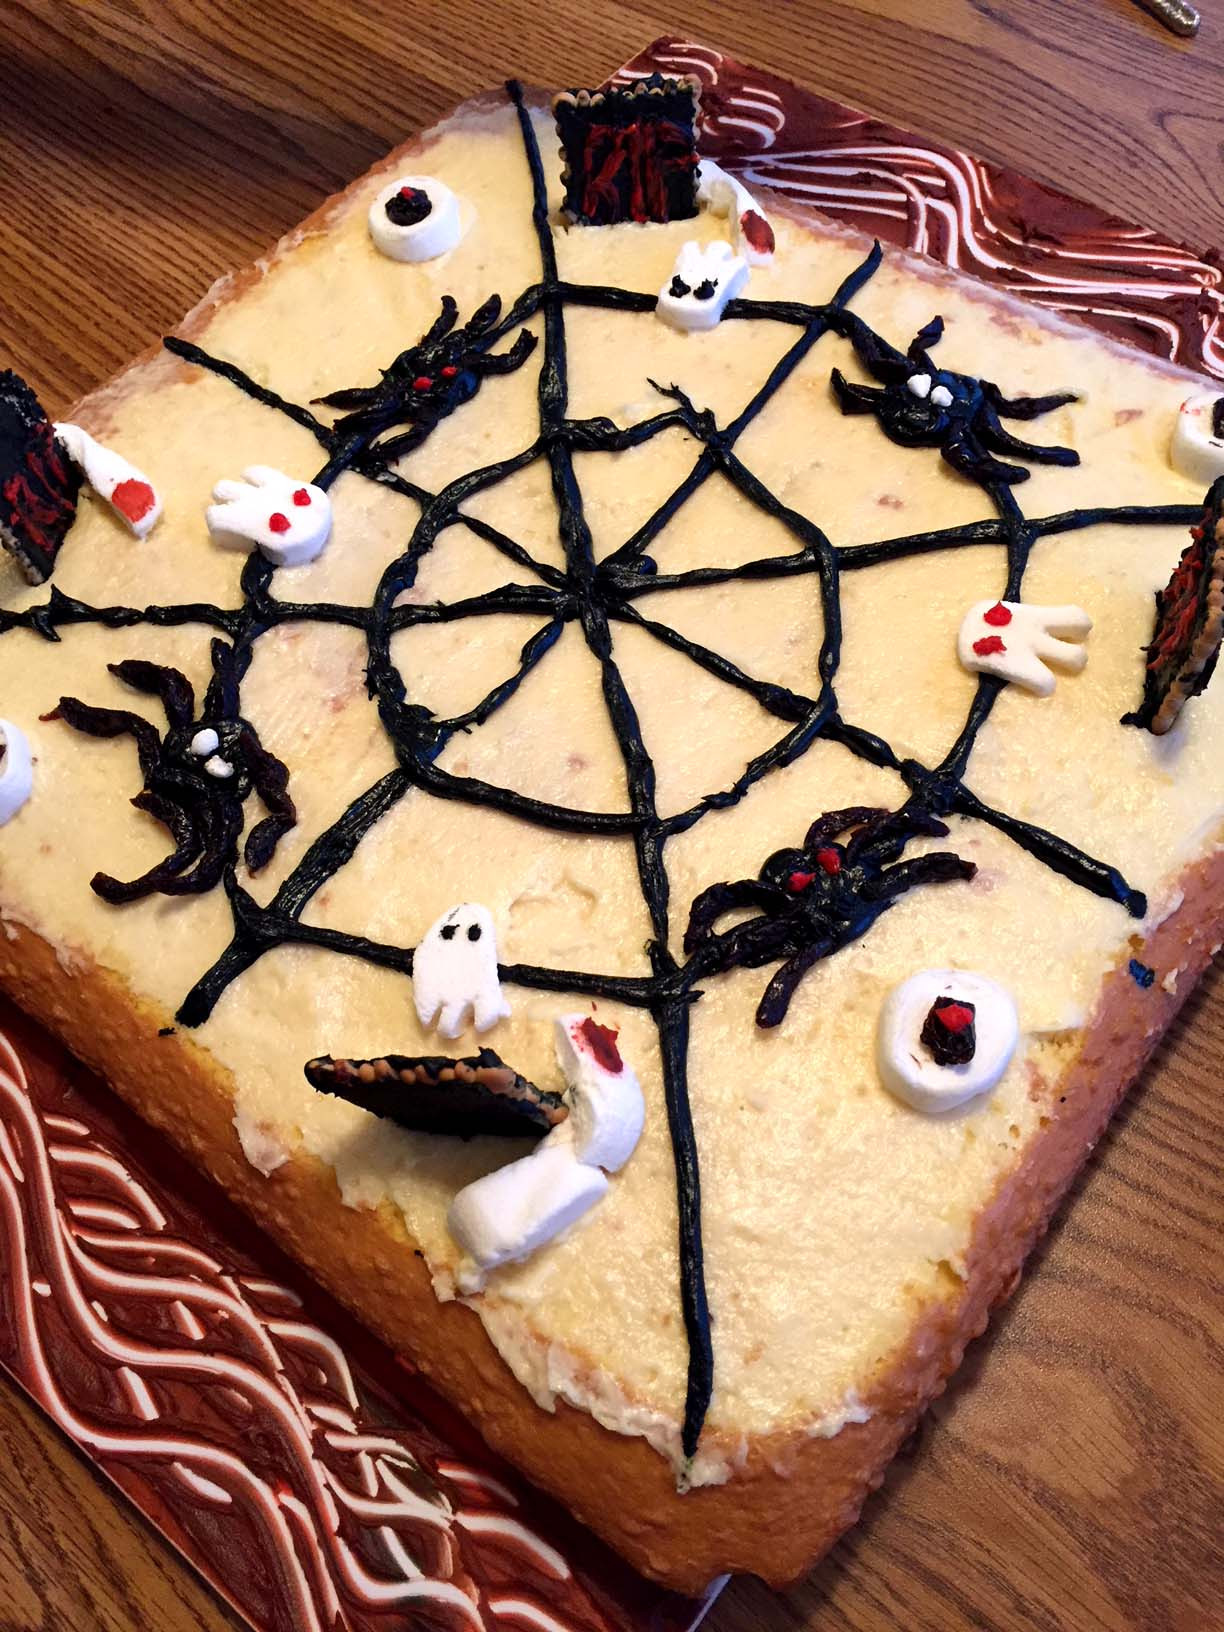 Easy Halloween Cakes Ideas  Easy Halloween Cake Decorating Ideas For Spooky Cake